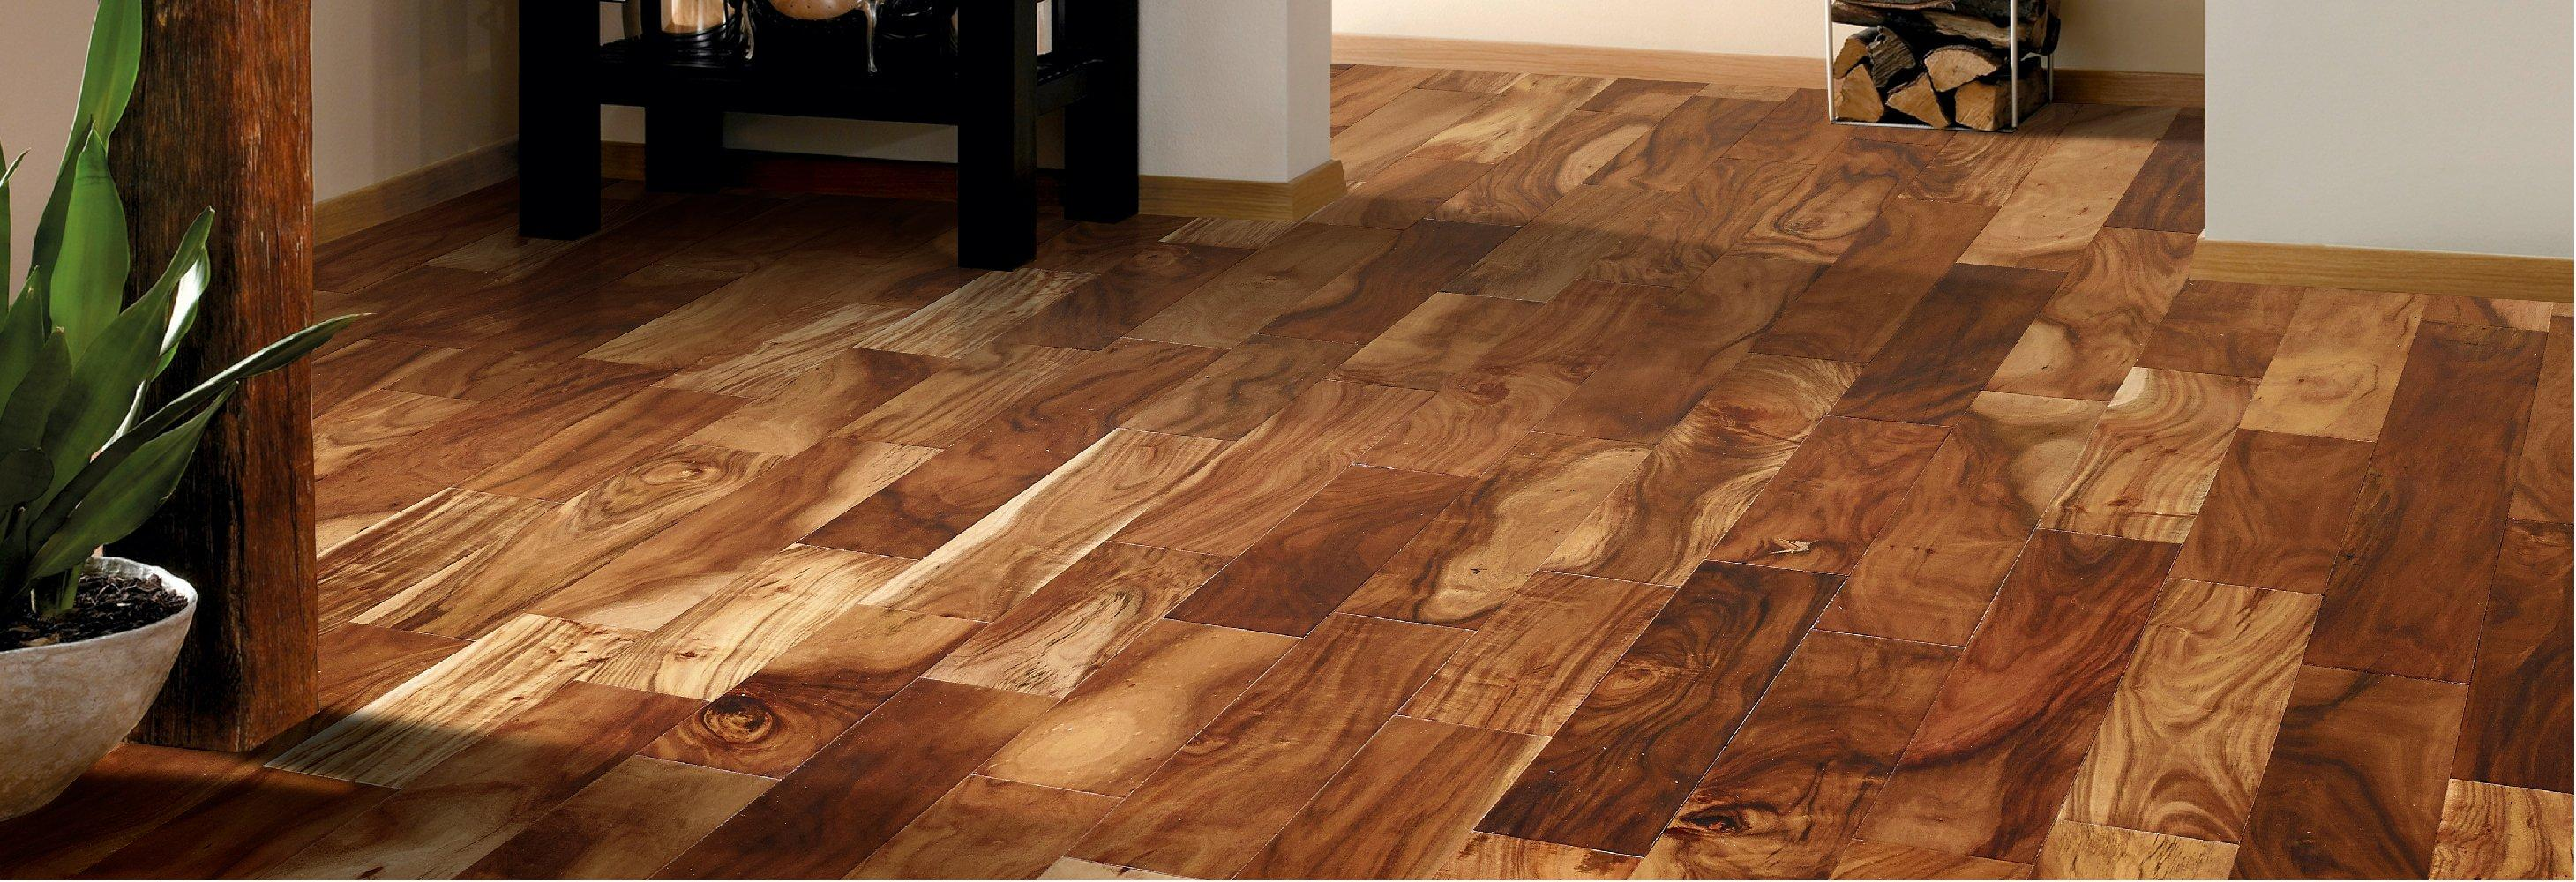 Engineered Hardwood Flooring Floor Decor